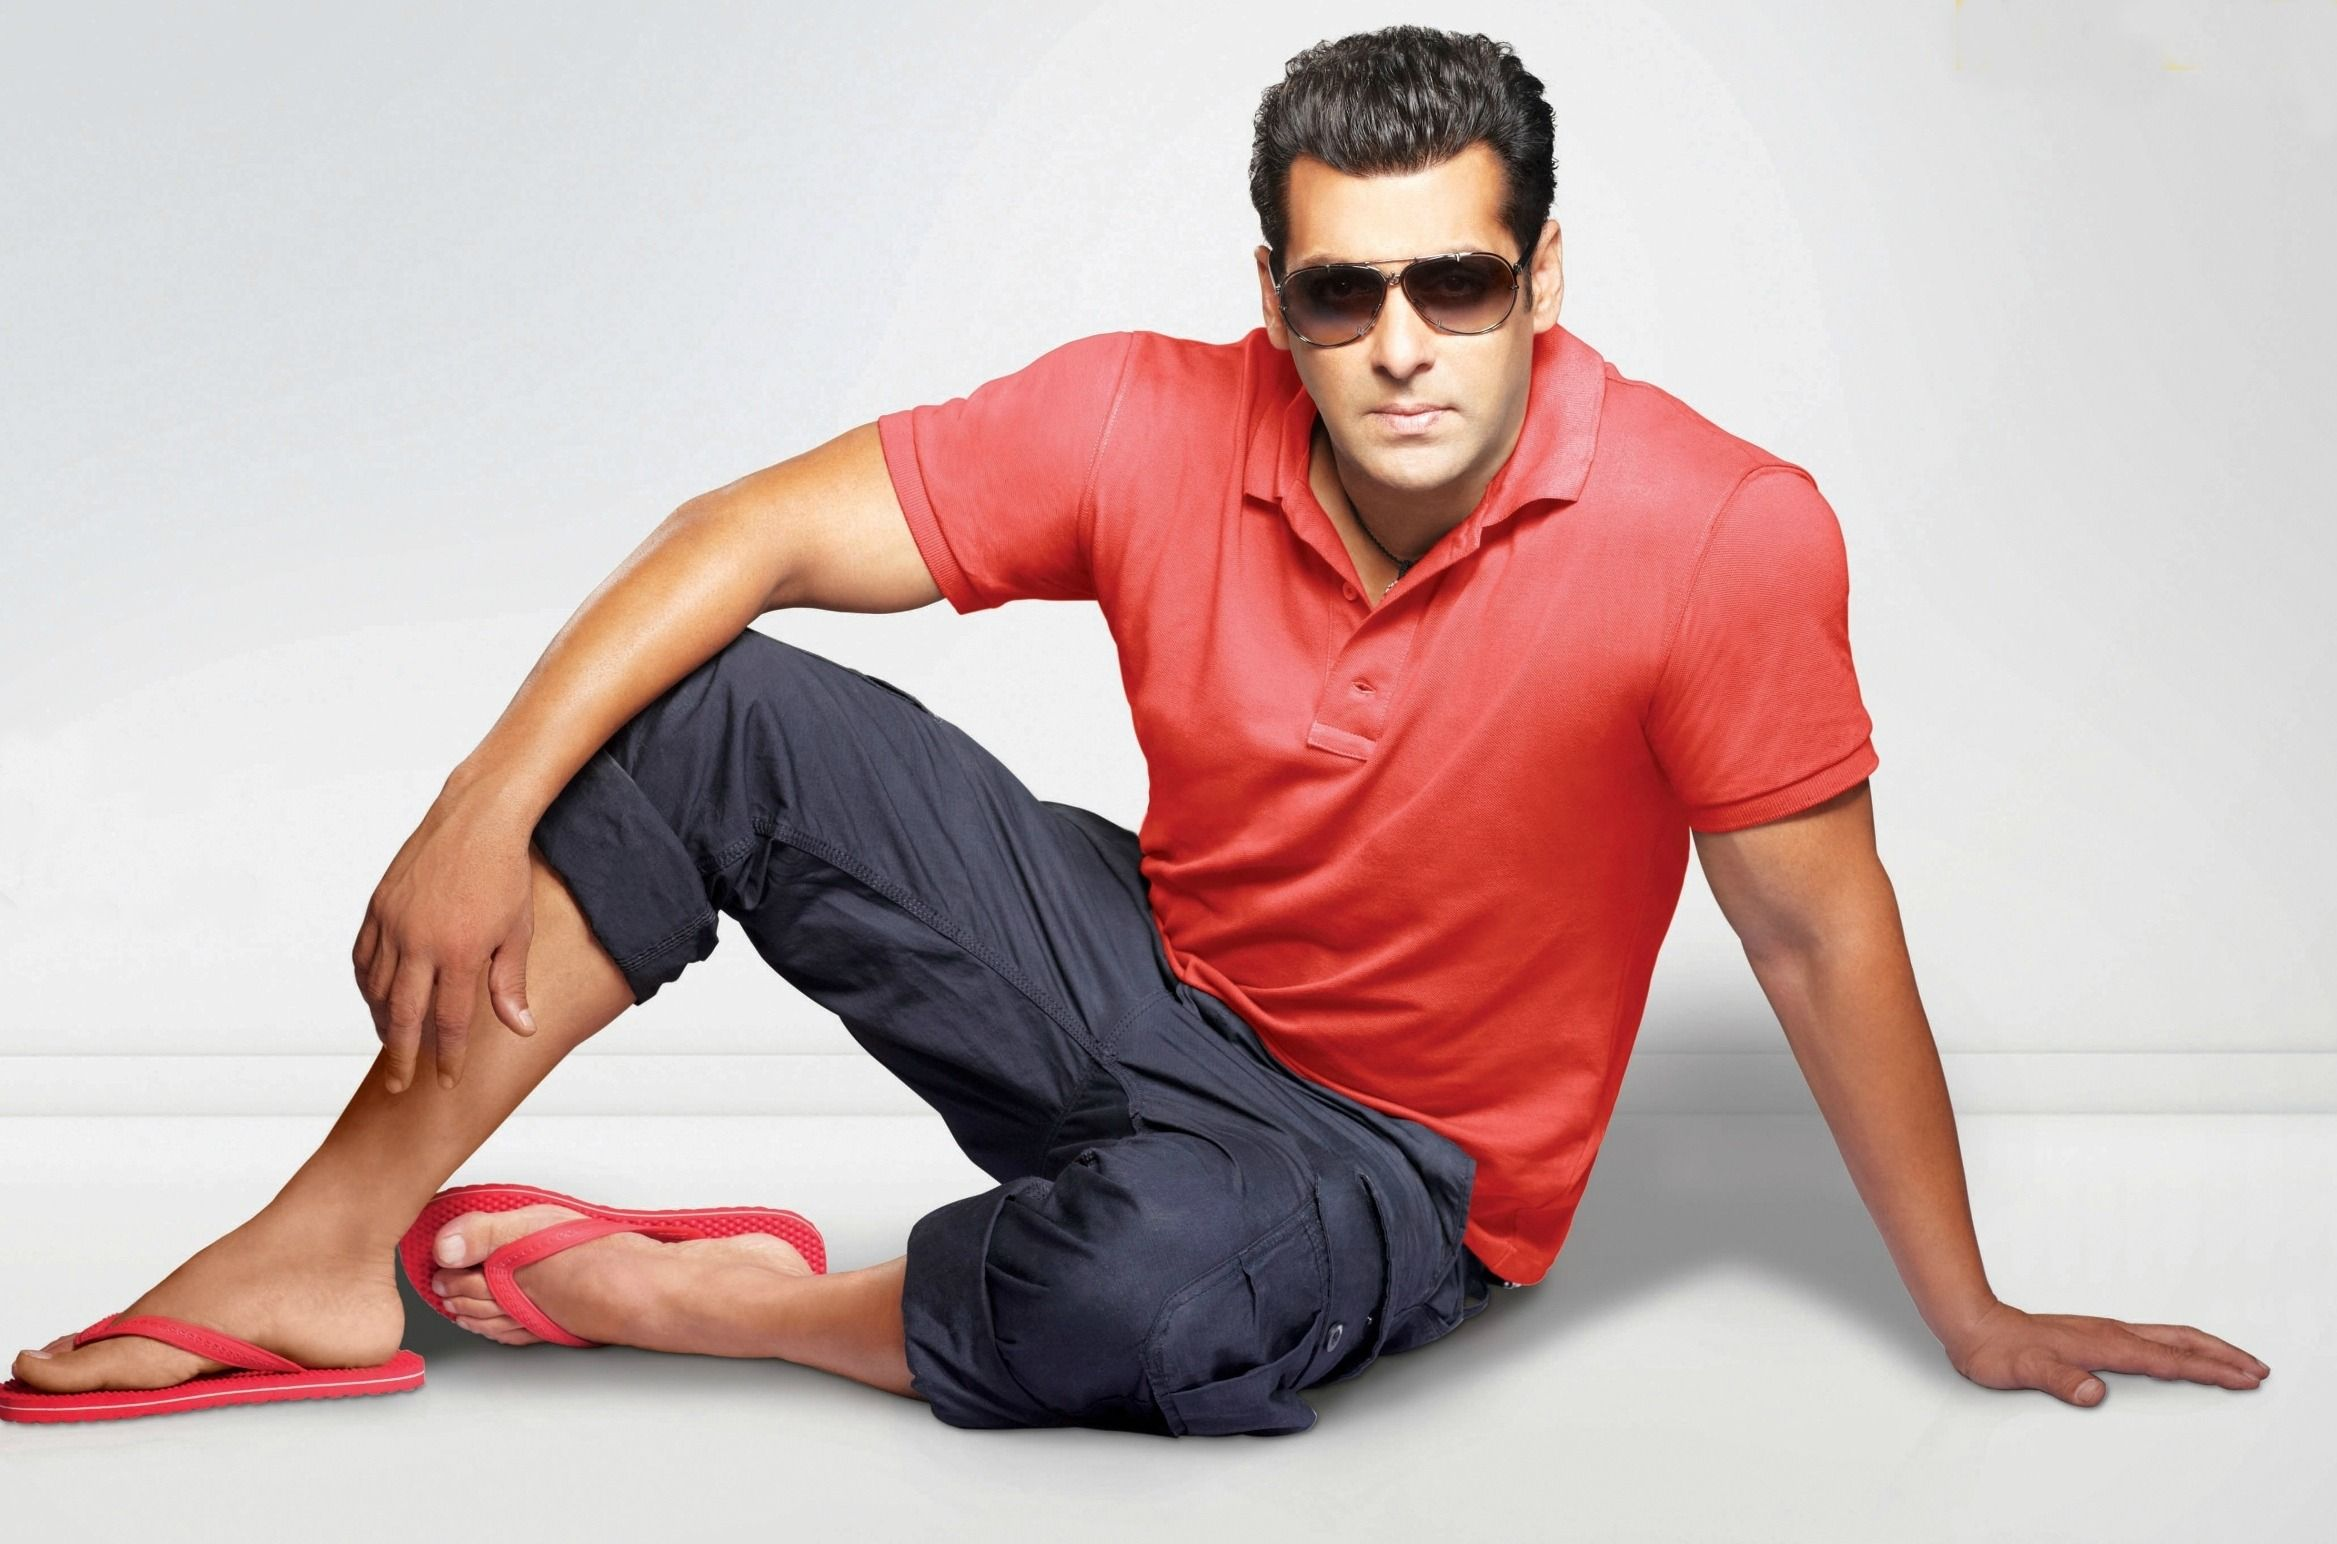 salman khan hd wallpapers - free download latest salman khan hd